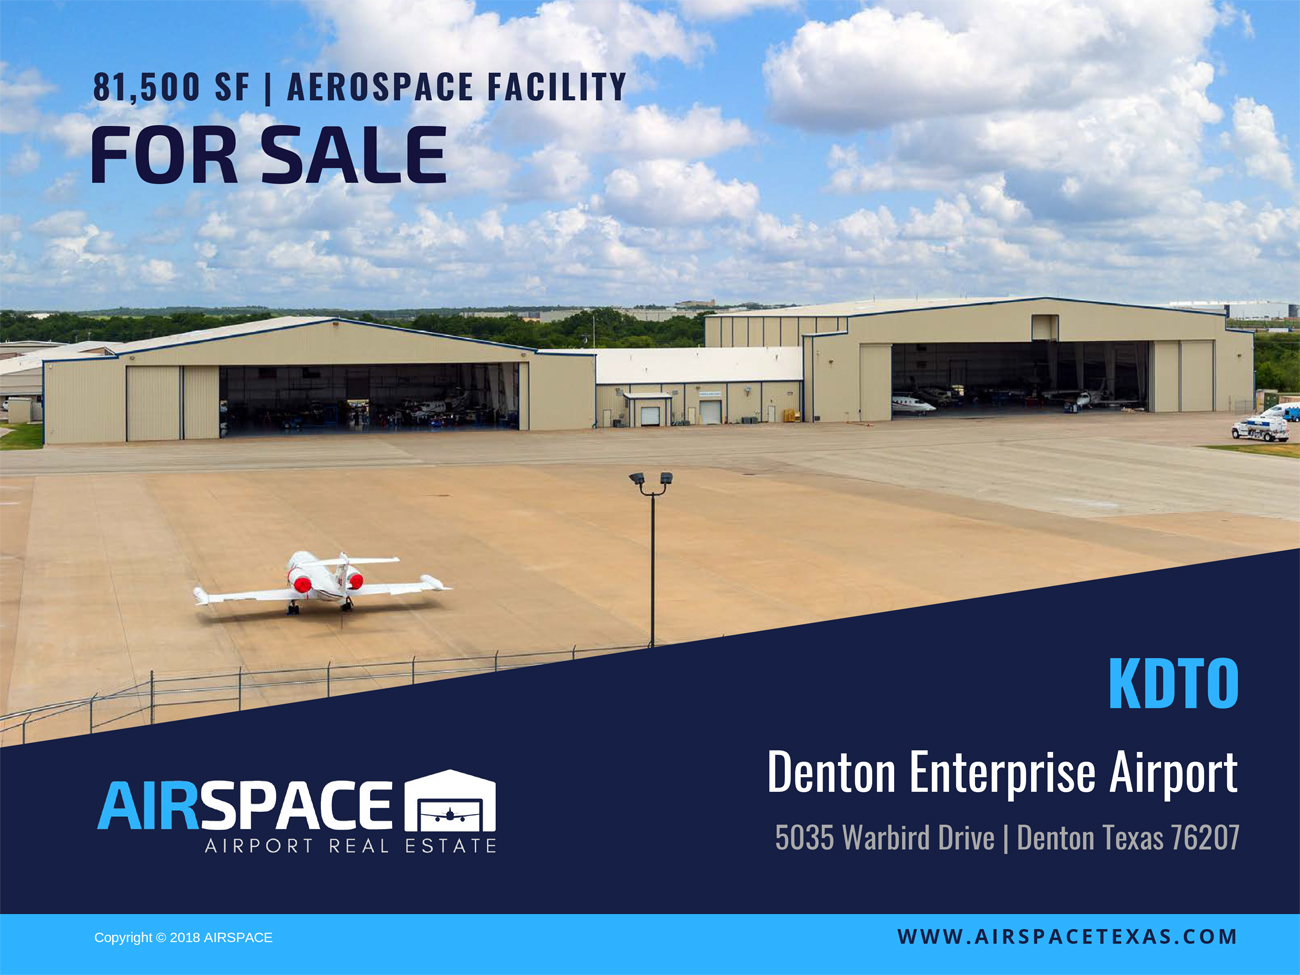 Texas Airports, Hangars and Lots for Sale, Hangars and